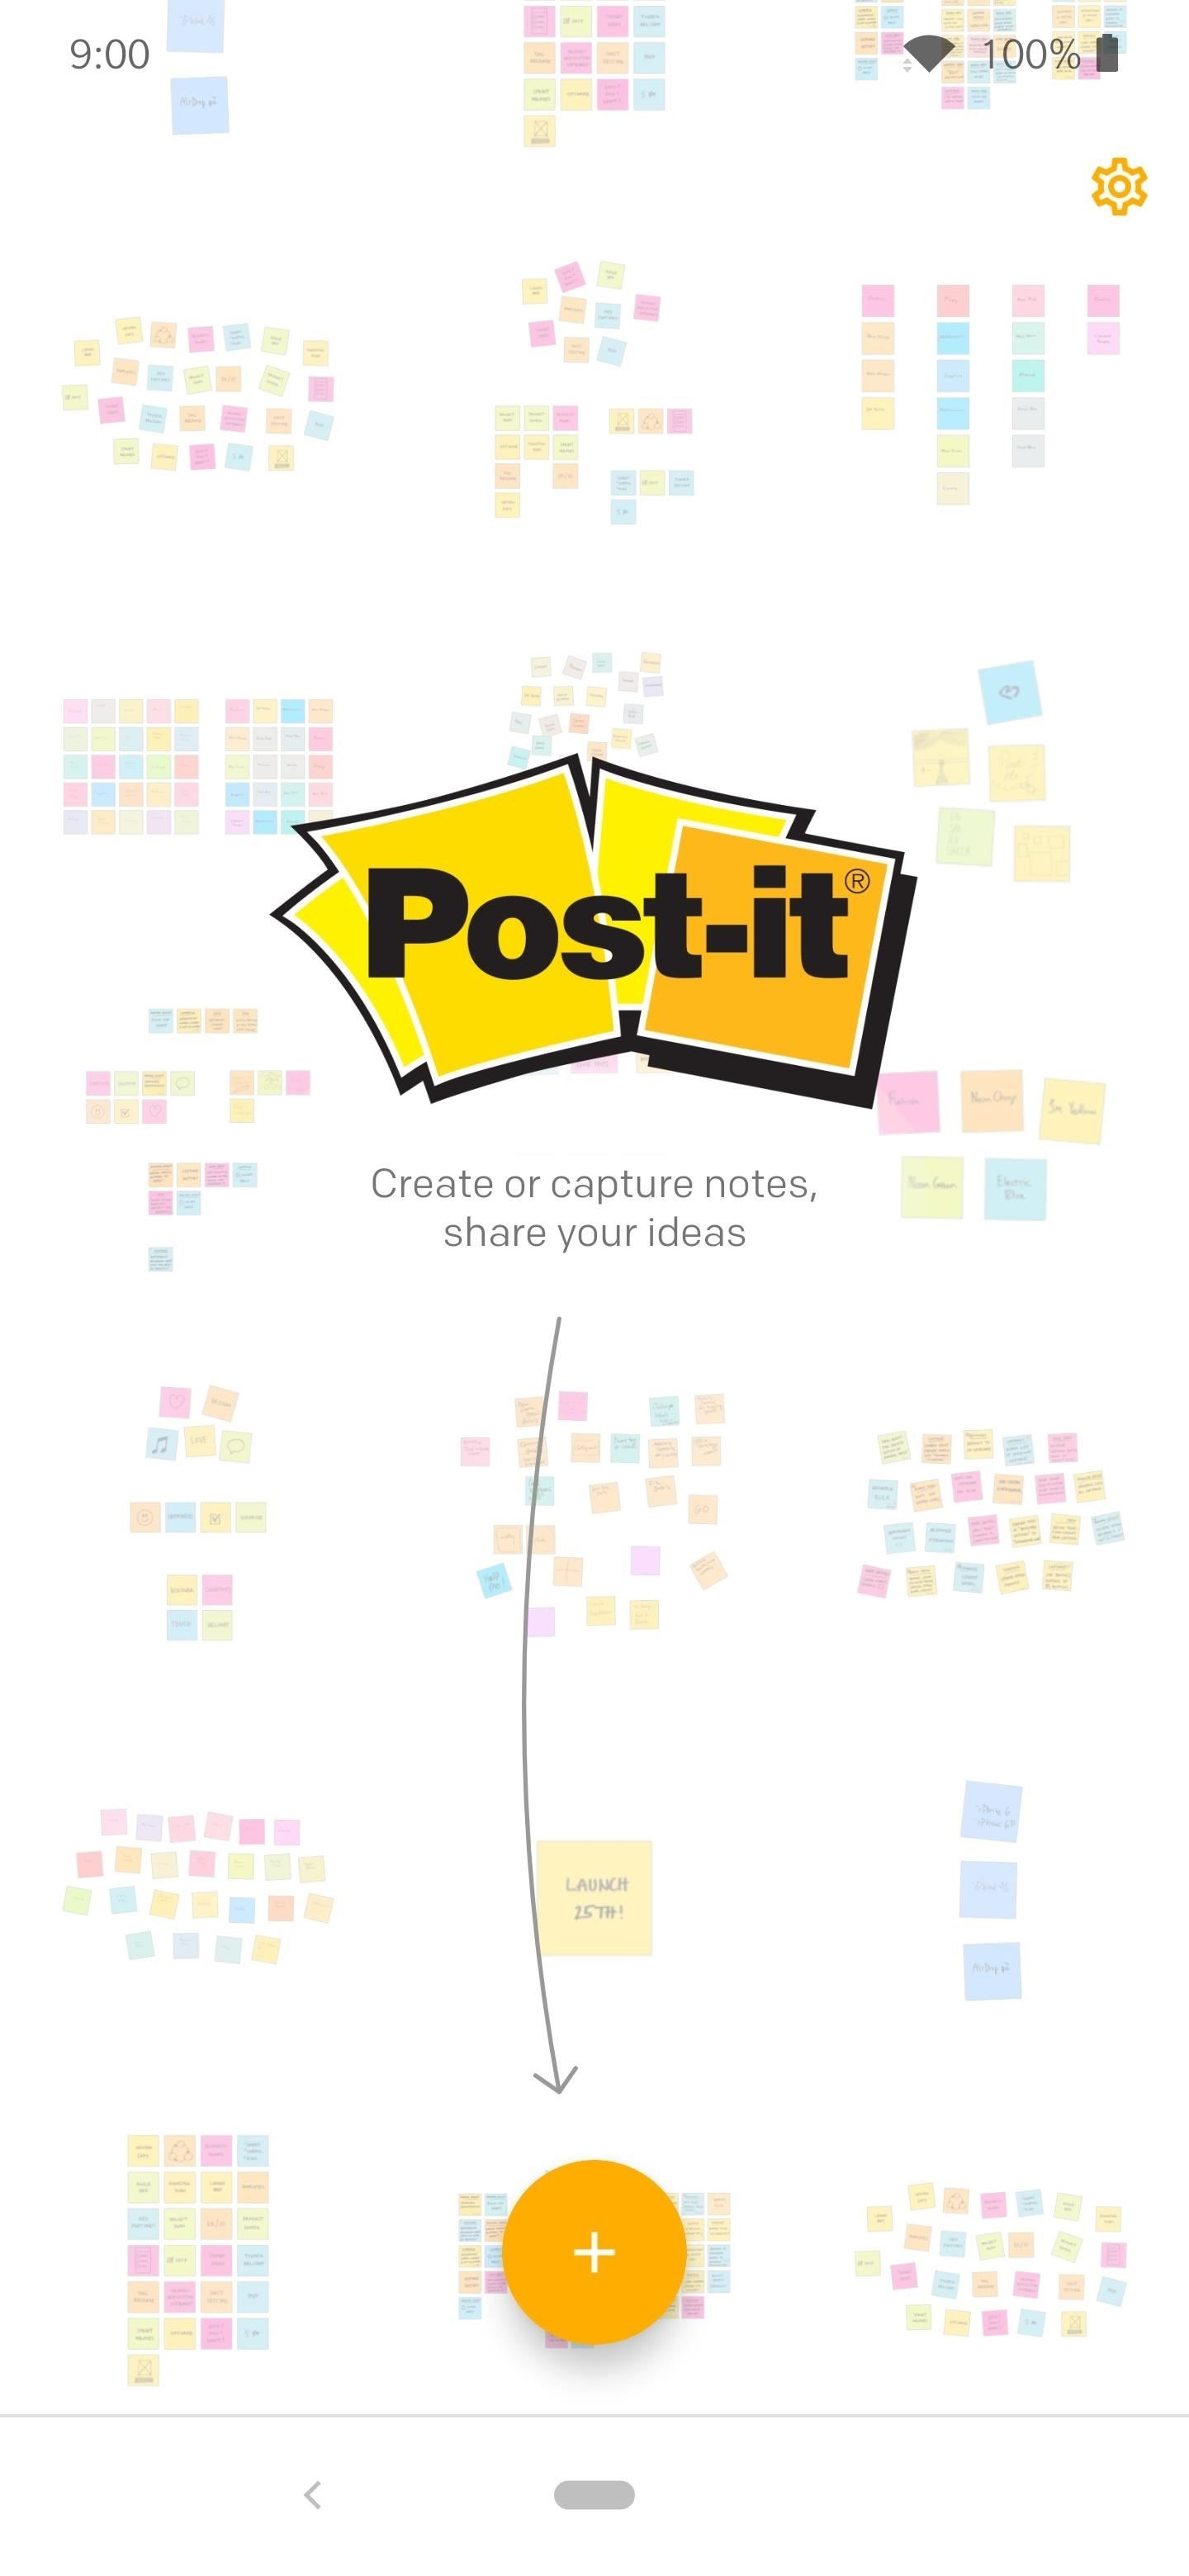 How to Digitize the Sticky Notes on Your Fridge